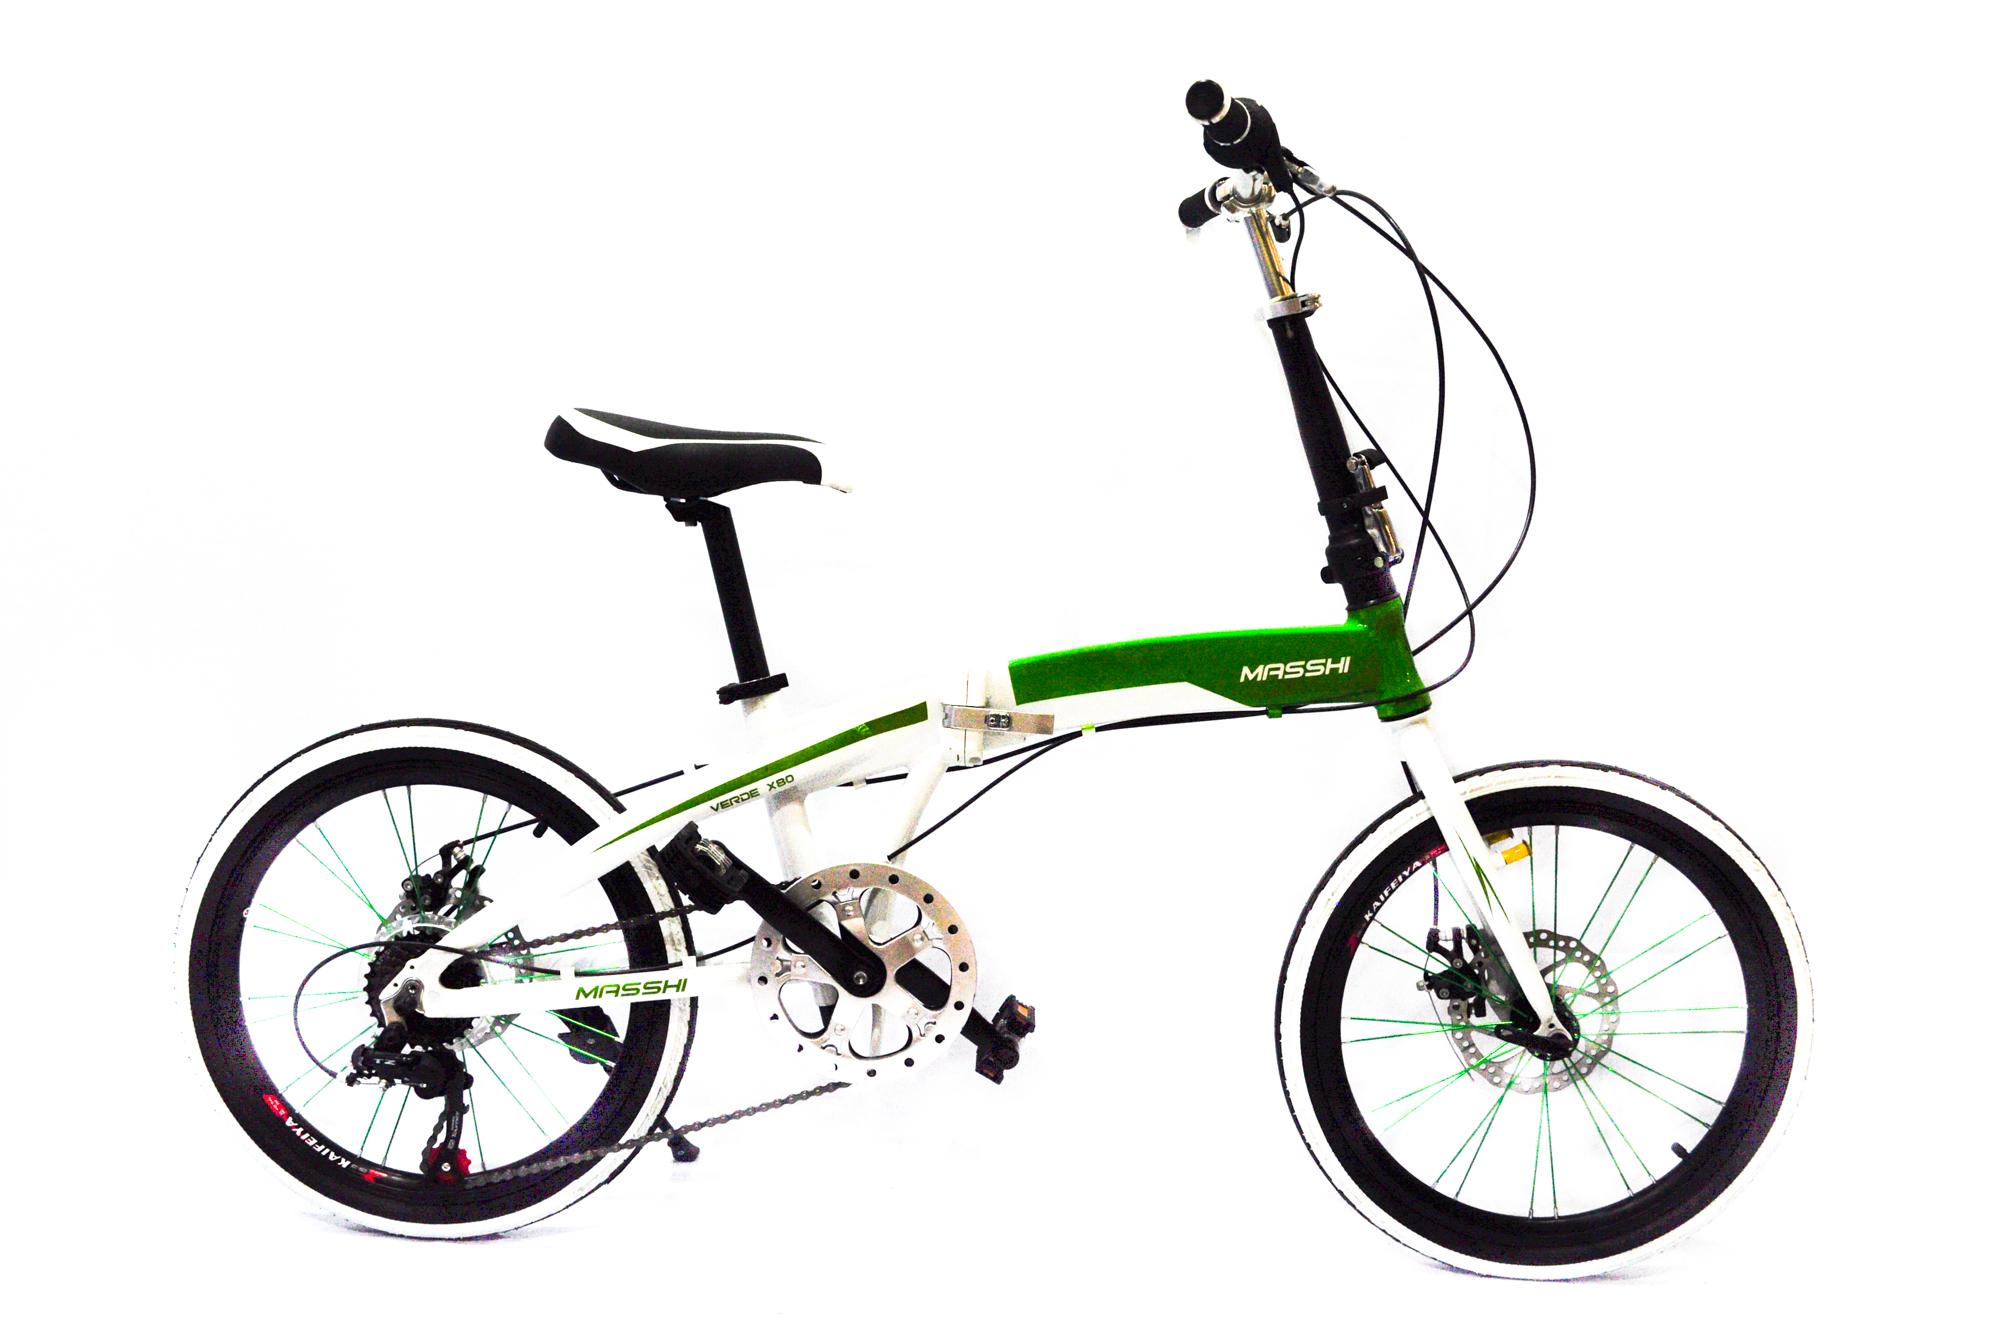 Masshi Folding Bike 20 Alloy Frame With Double Wall Rim